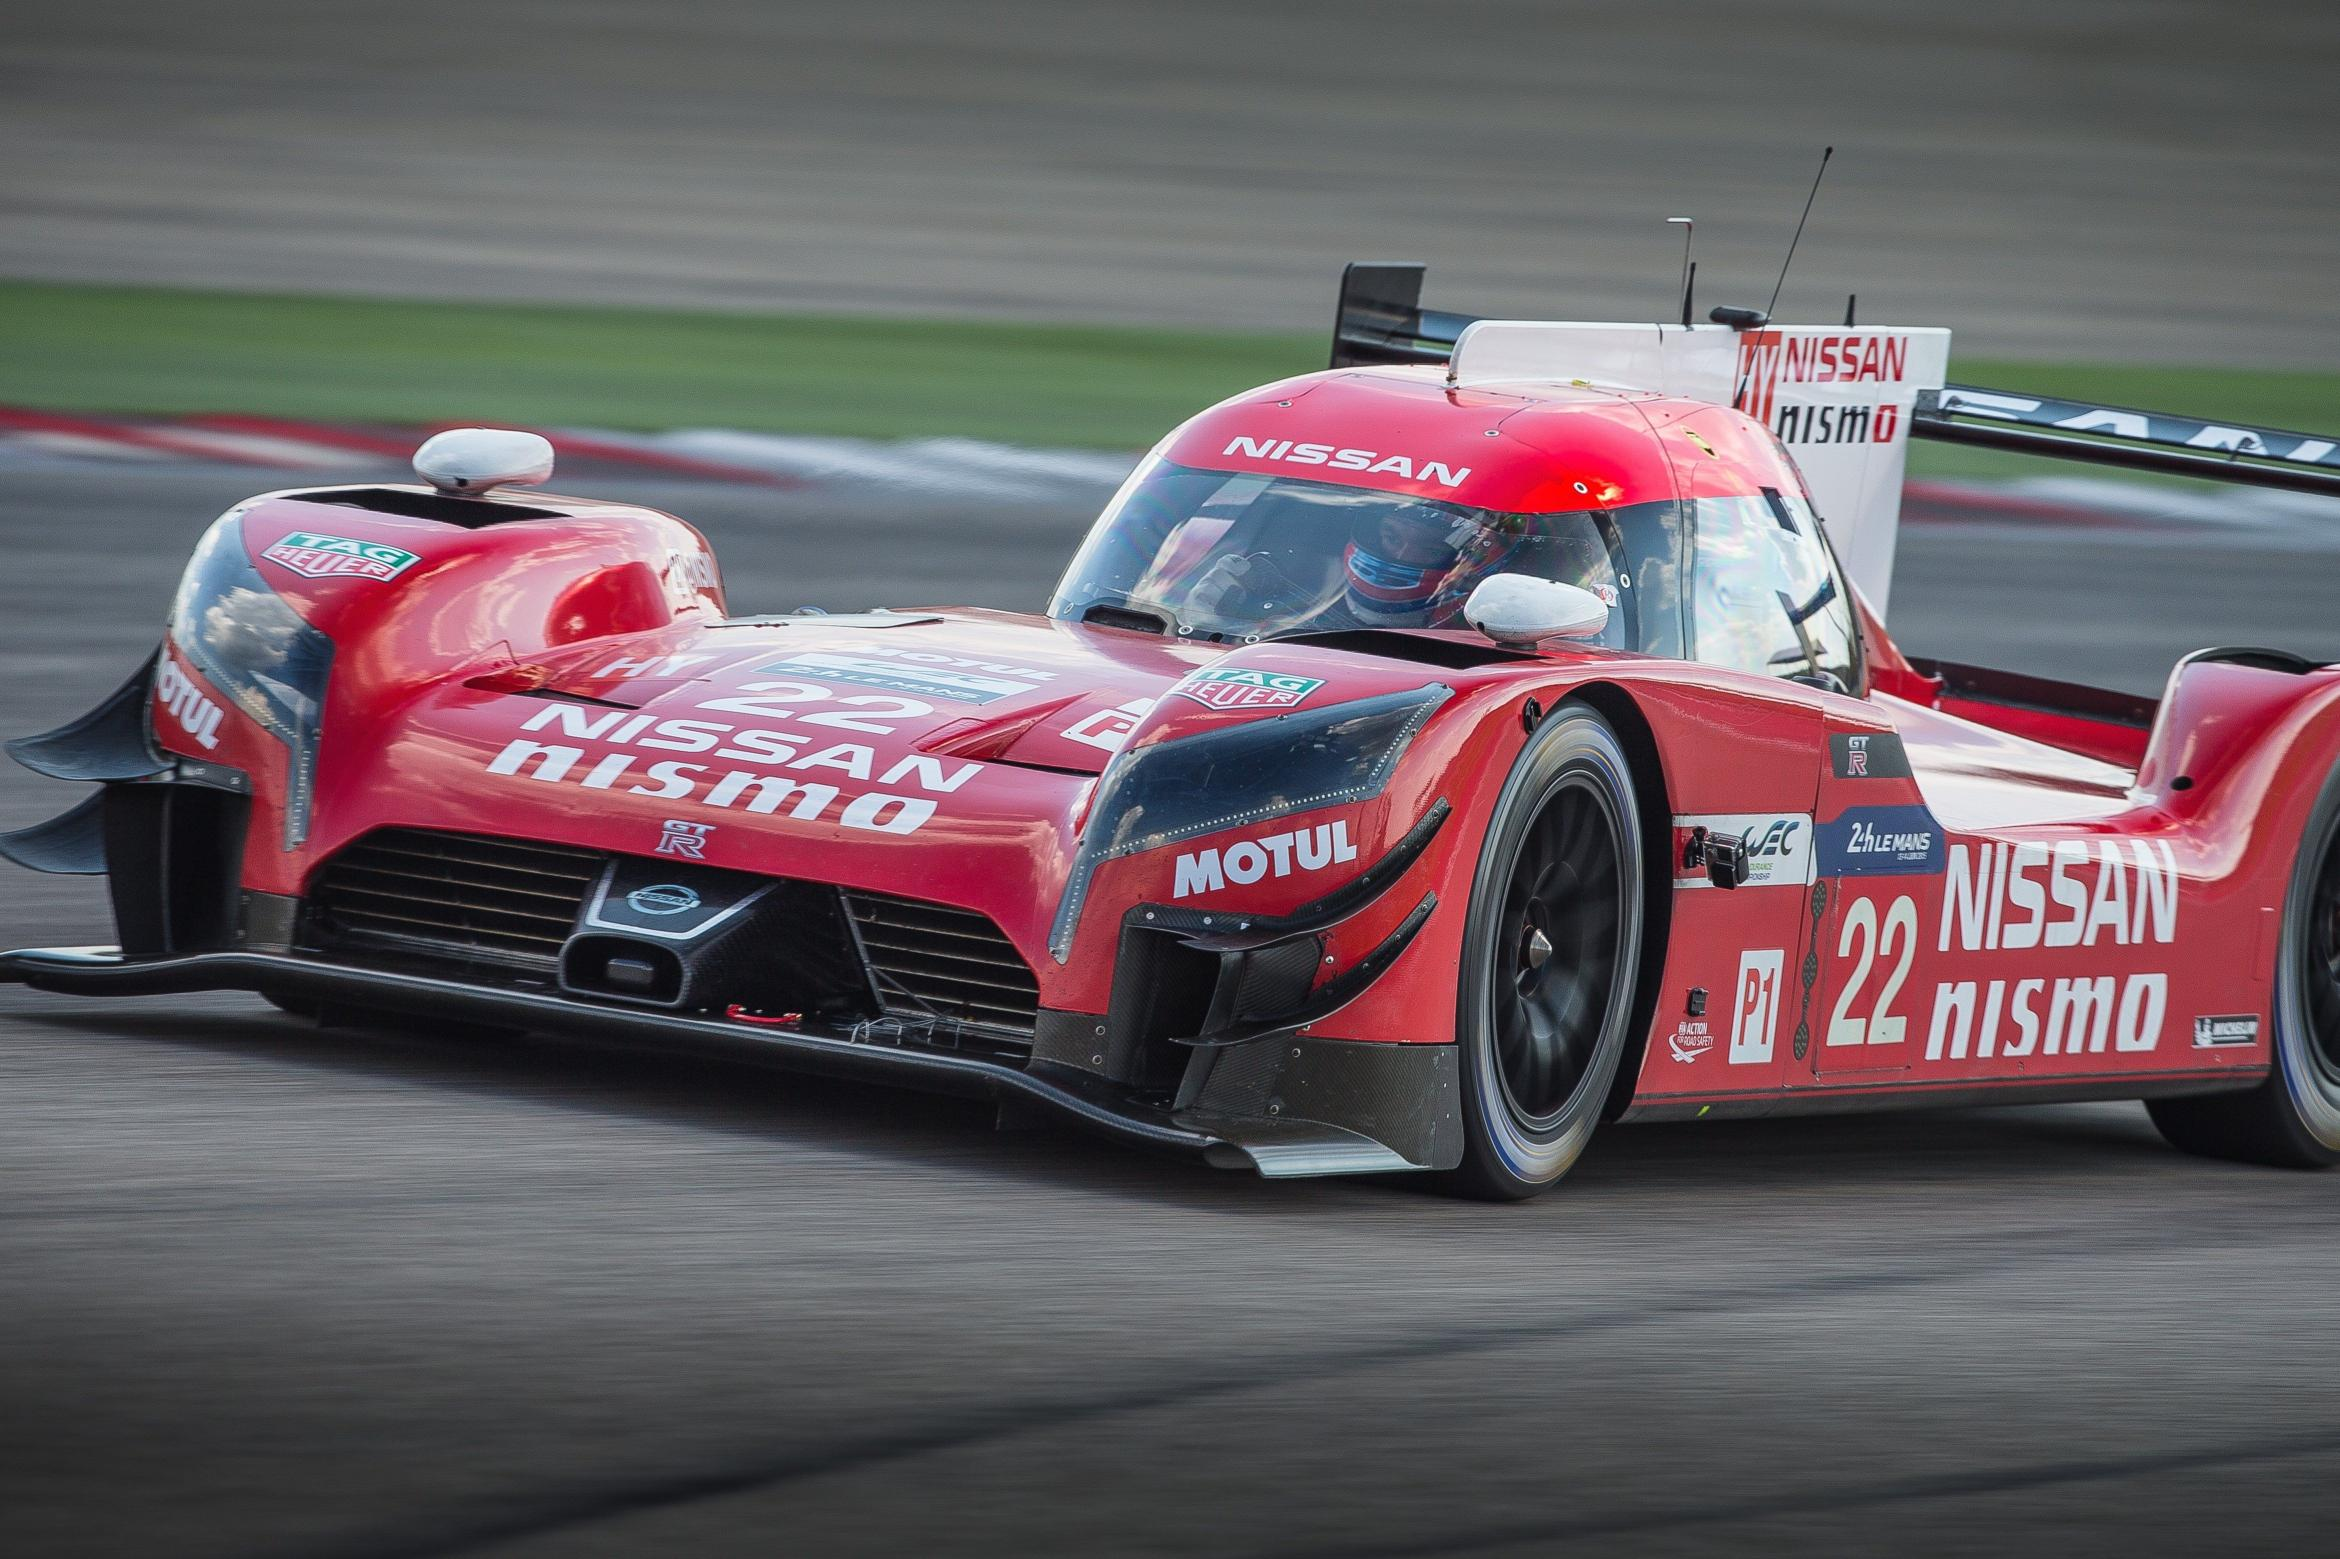 Nissan GT-R LM NISMO 15 | GTPlanet